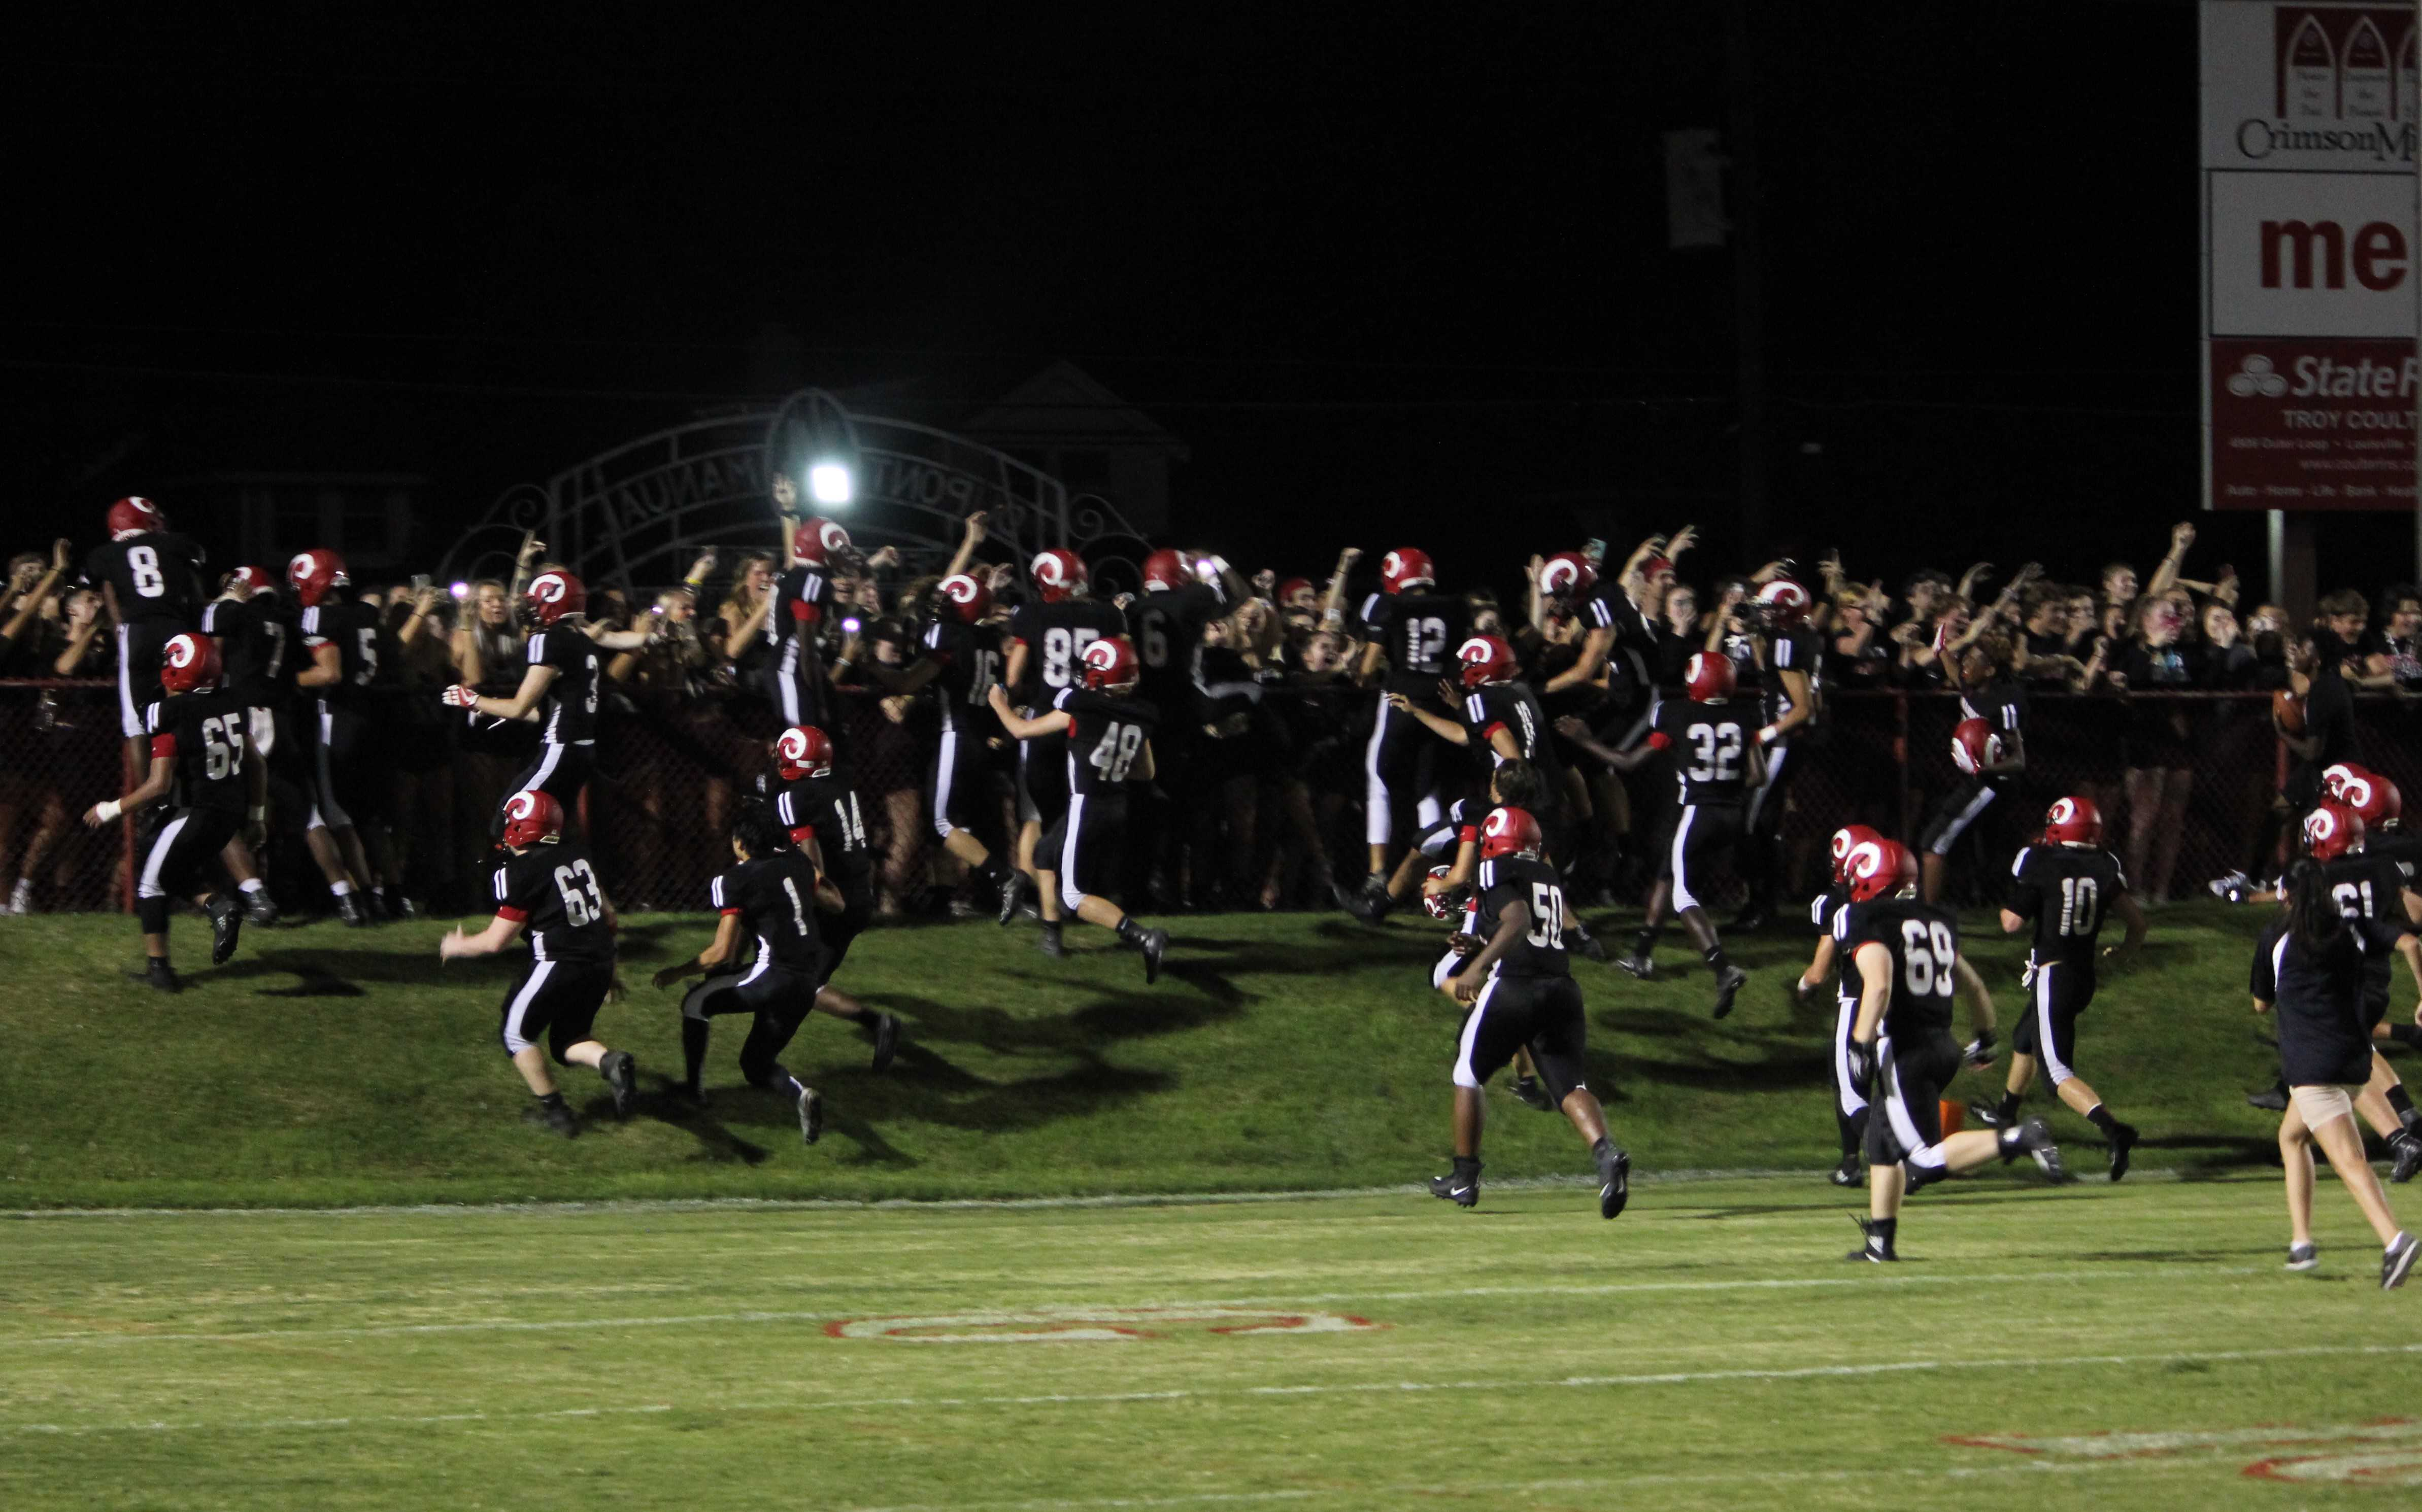 """The Manual football team rushes to meet the fans after their 33-13 win over Fern Creek. """"I'm glad we got to bring the win home to the team,"""" Clayton Awbrey (12, #11) said. Photo by EP Presnell."""